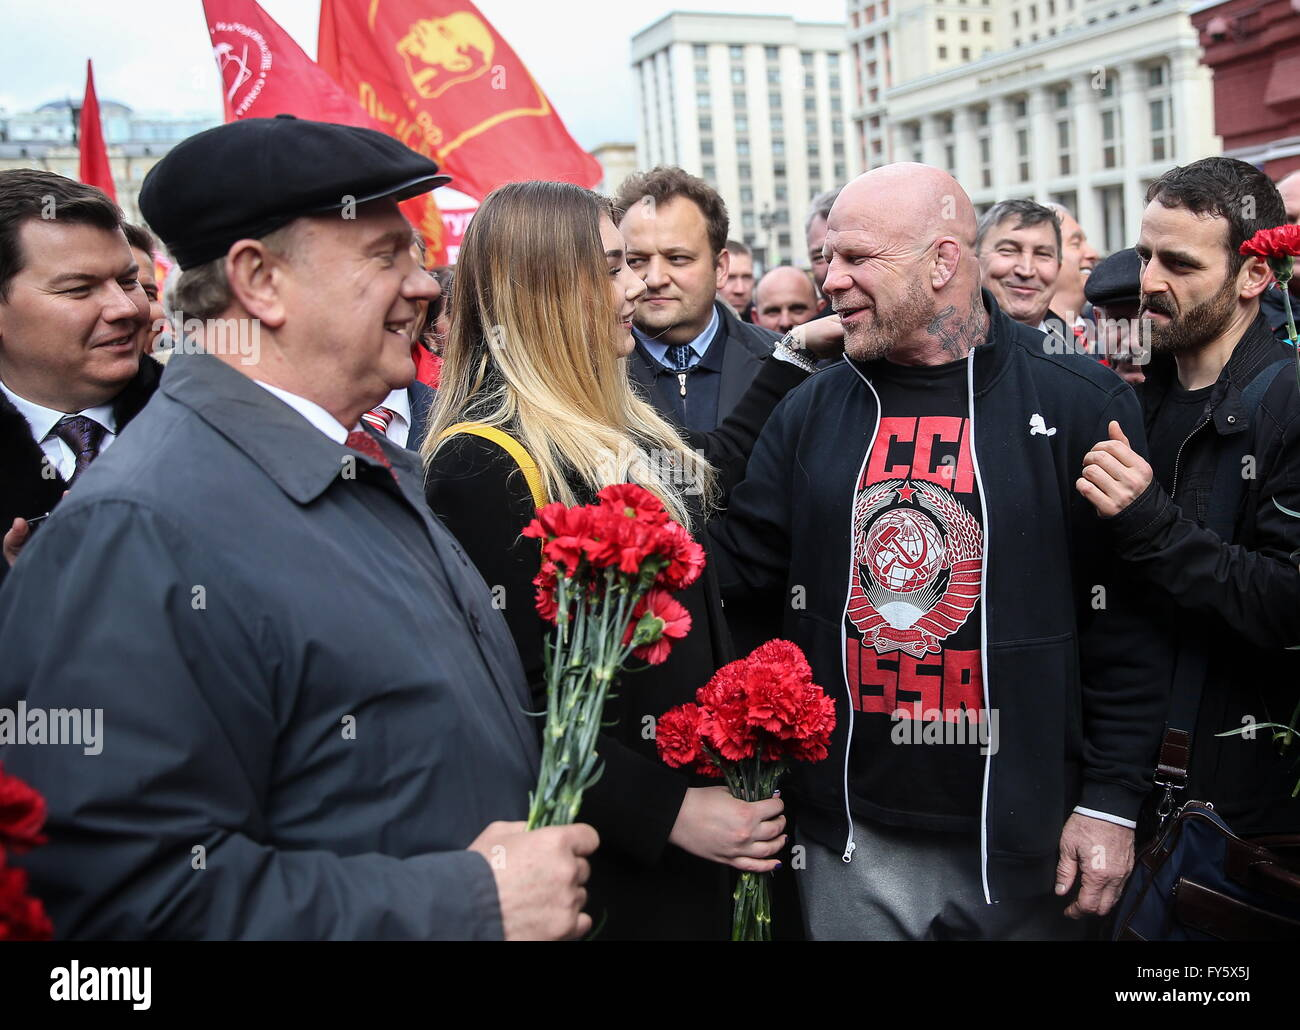 communism in russia The question presents a false dichotomy democracy is primarily a political system while communism is primarily an economic system democracy and communism can exist together, in exclusion.